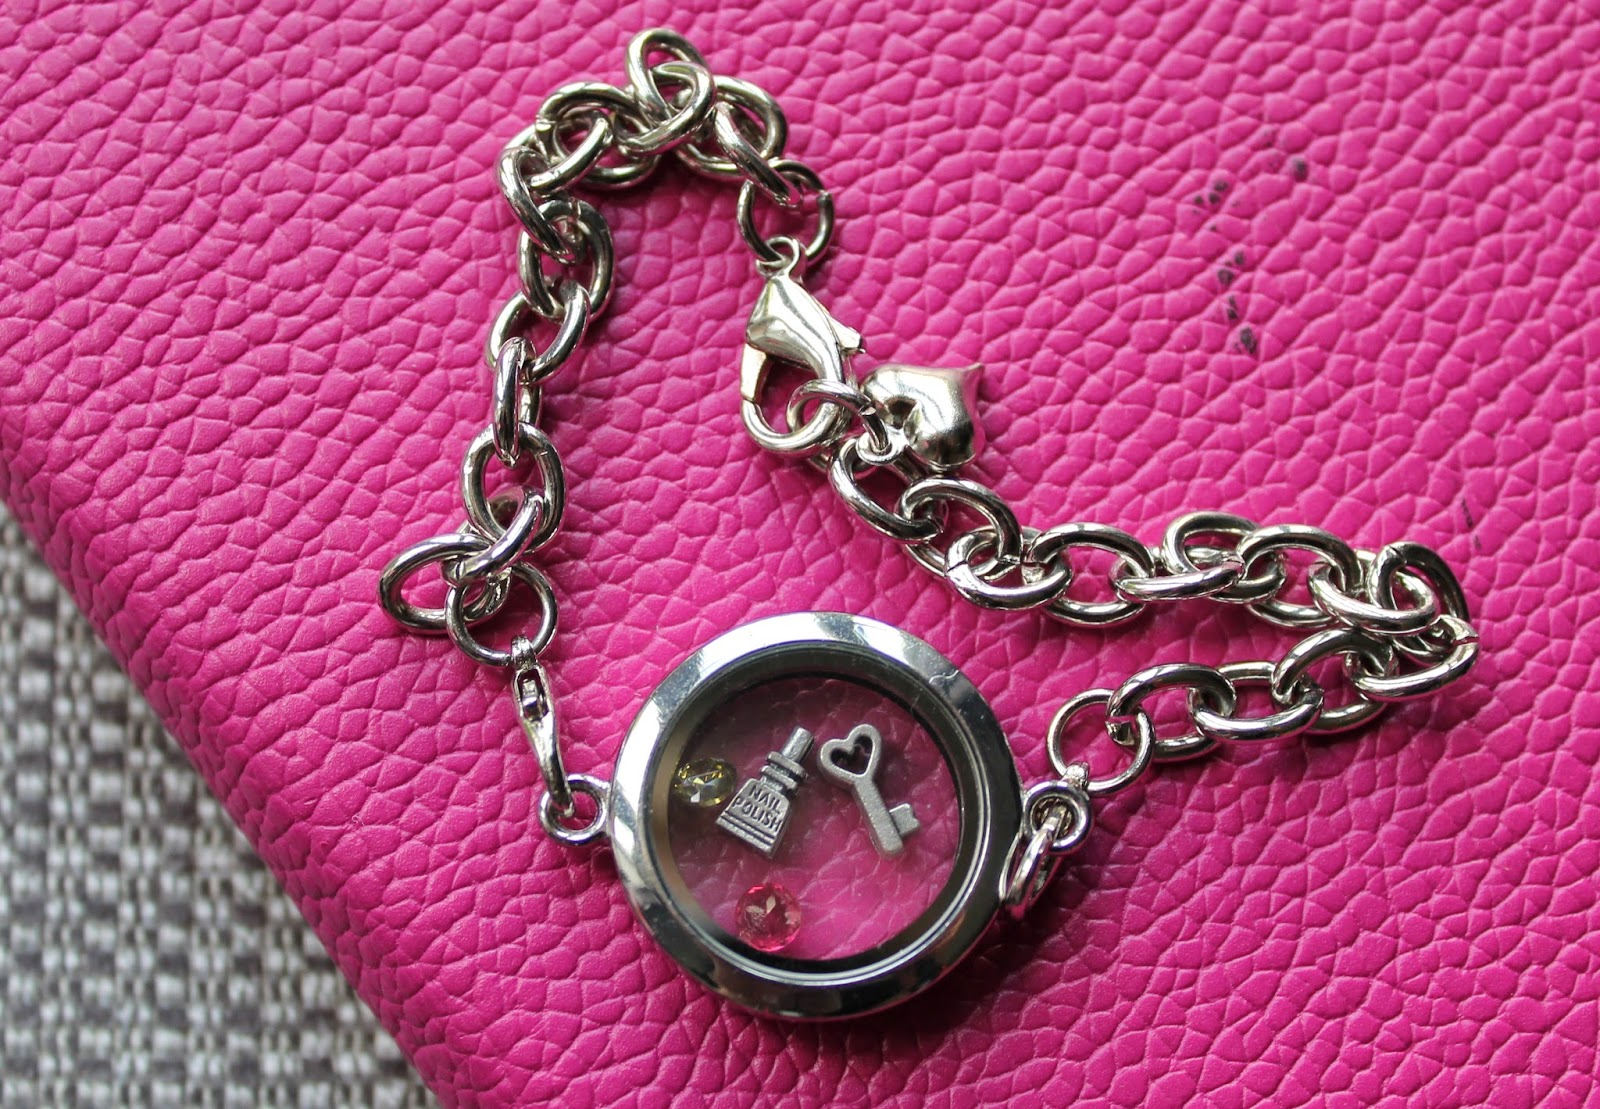 Memory Locket Bracelet - Seasons Online - Jewellery - Charms - Silver Chain